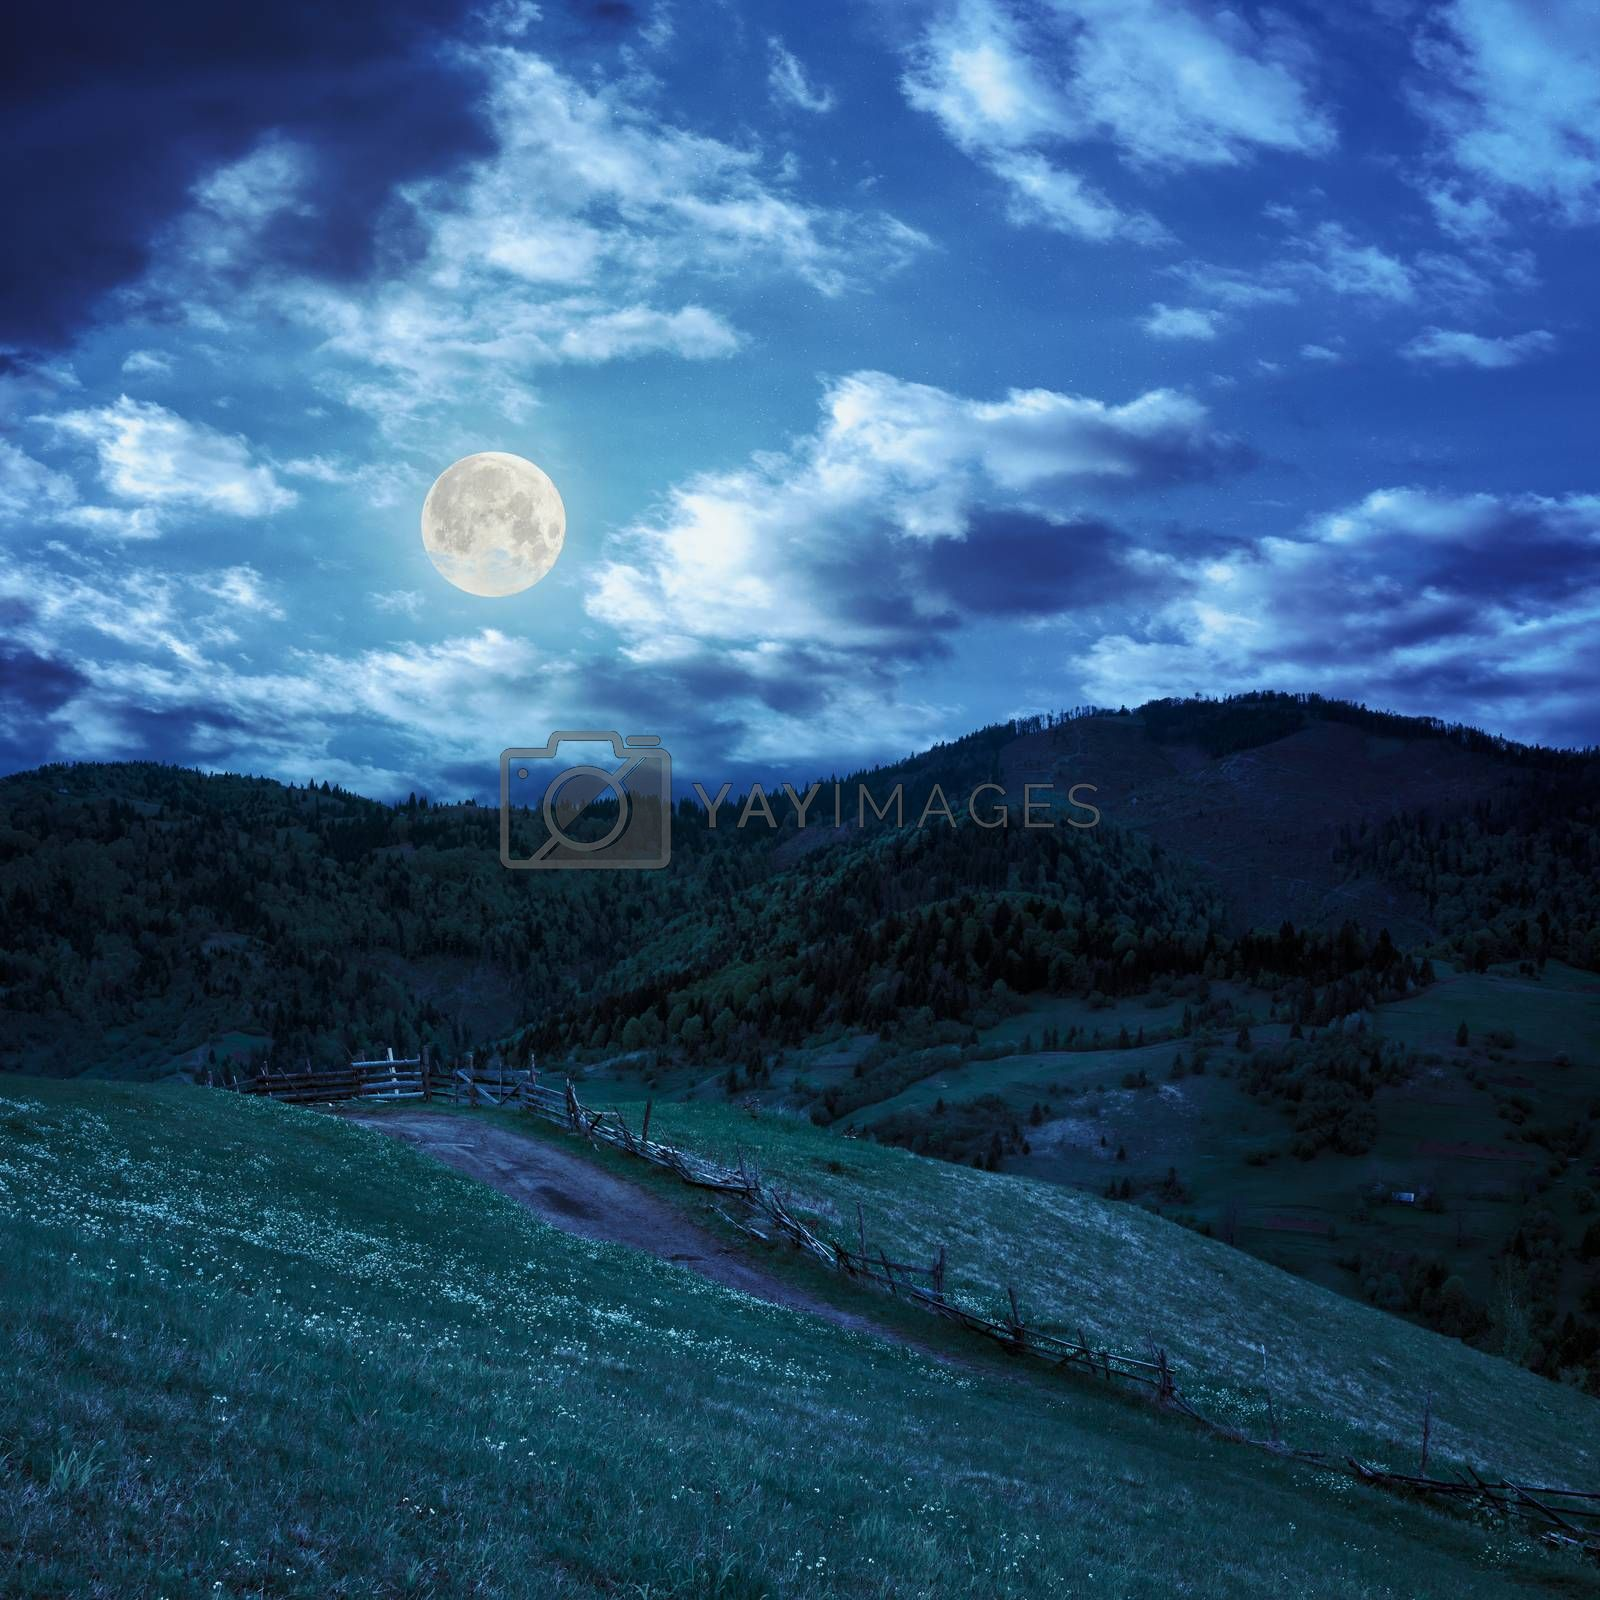 fence on hillside meadow in mountain at night by Pellinni